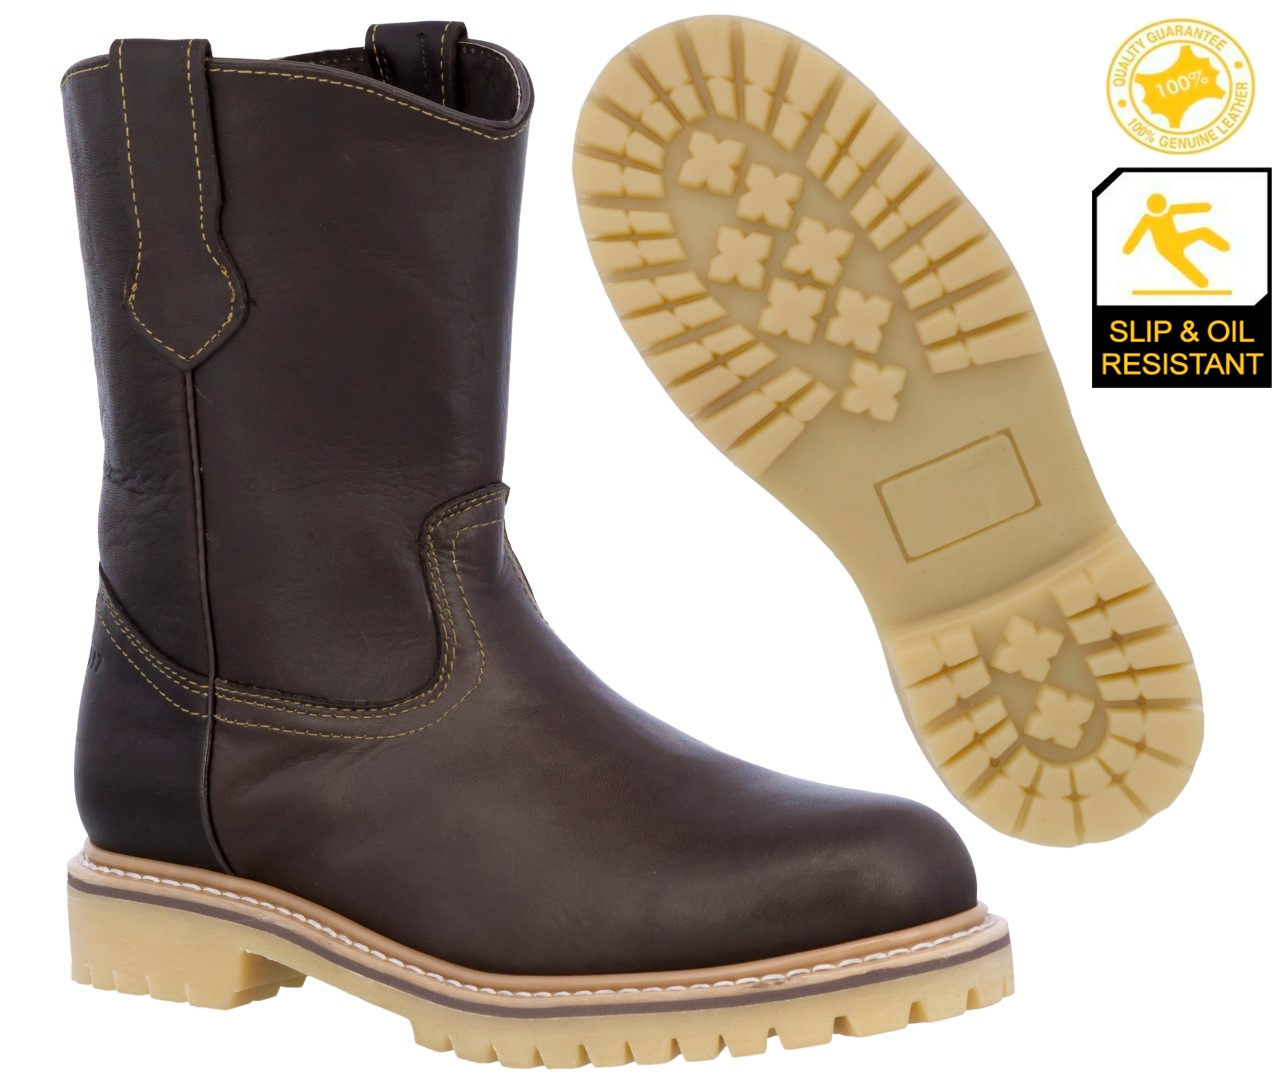 Image is loading Mens-Brown-Leather-Tough-Durable-Construction-Work-Boots- cff7477e8e61